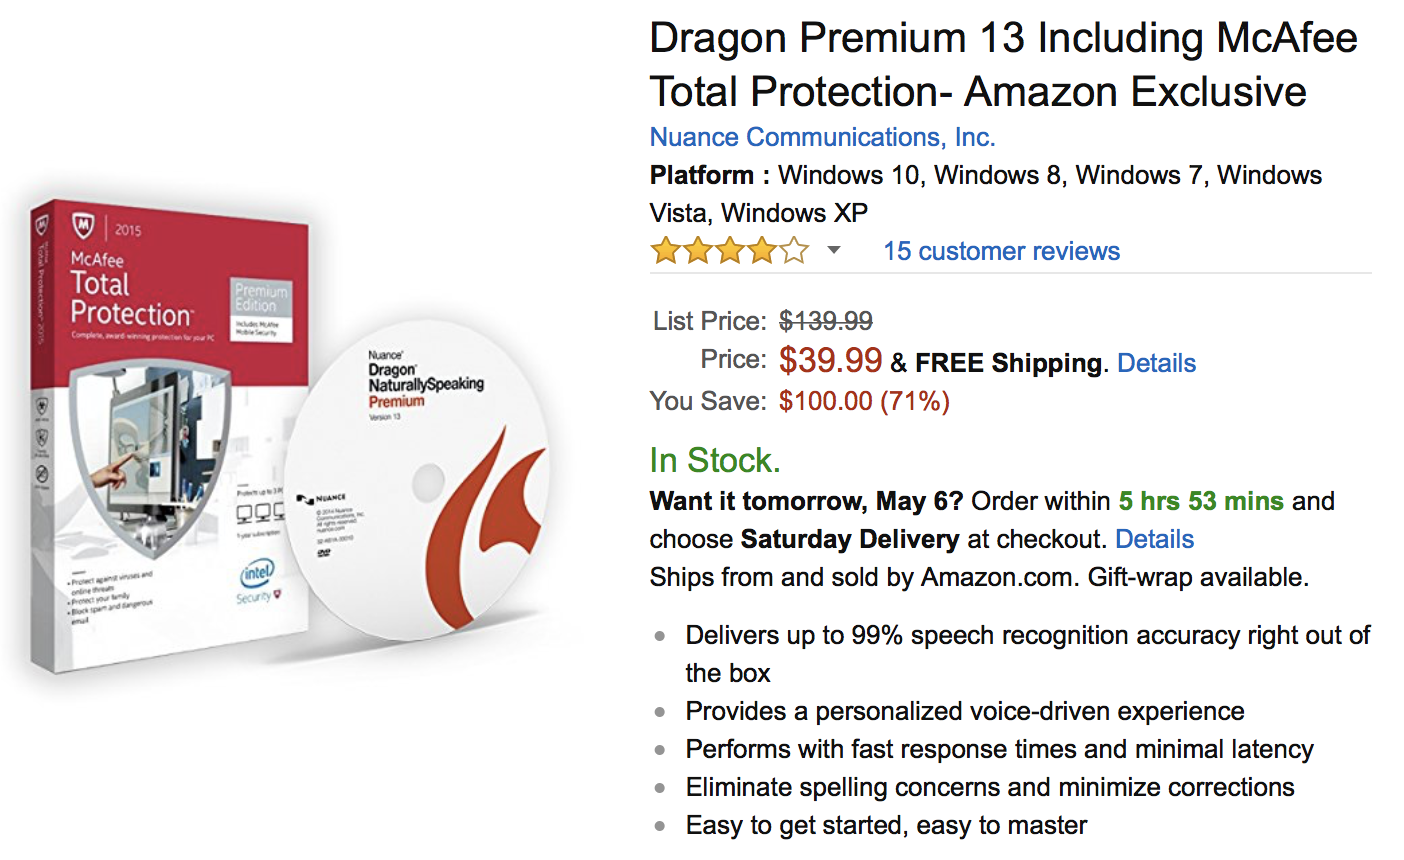 dragon naturallyspeaking premium 13 currently $39.99 at amazon – is